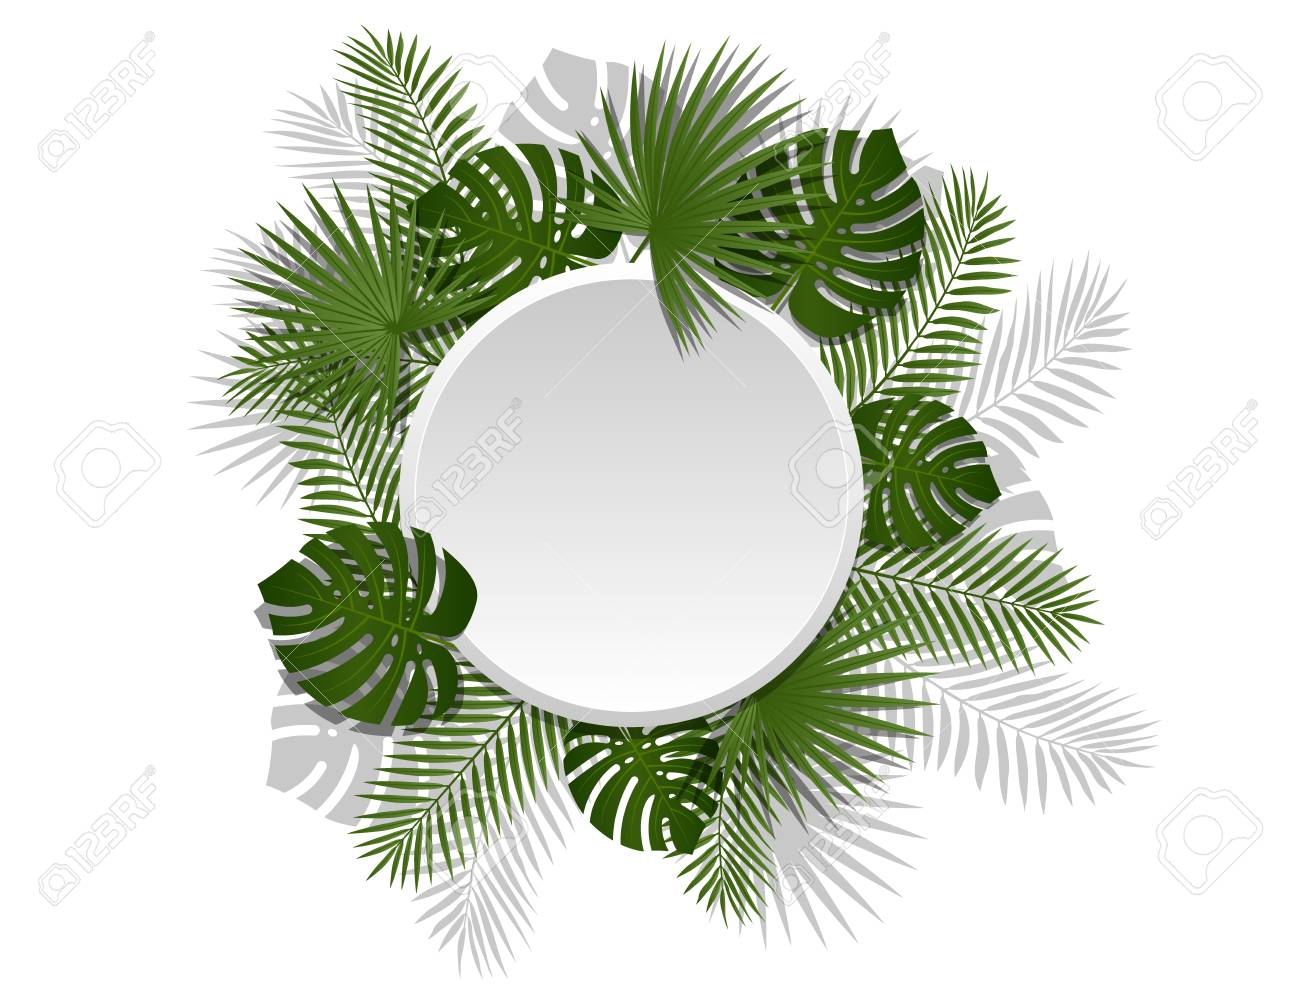 Green Summer Tropical Header With Exotic Palm Leaves And Plant Royalty Free Cliparts Vectors And Stock Illustration Image 78701324 Green leaf on white sand during daytime. green summer tropical header with exotic palm leaves and plant